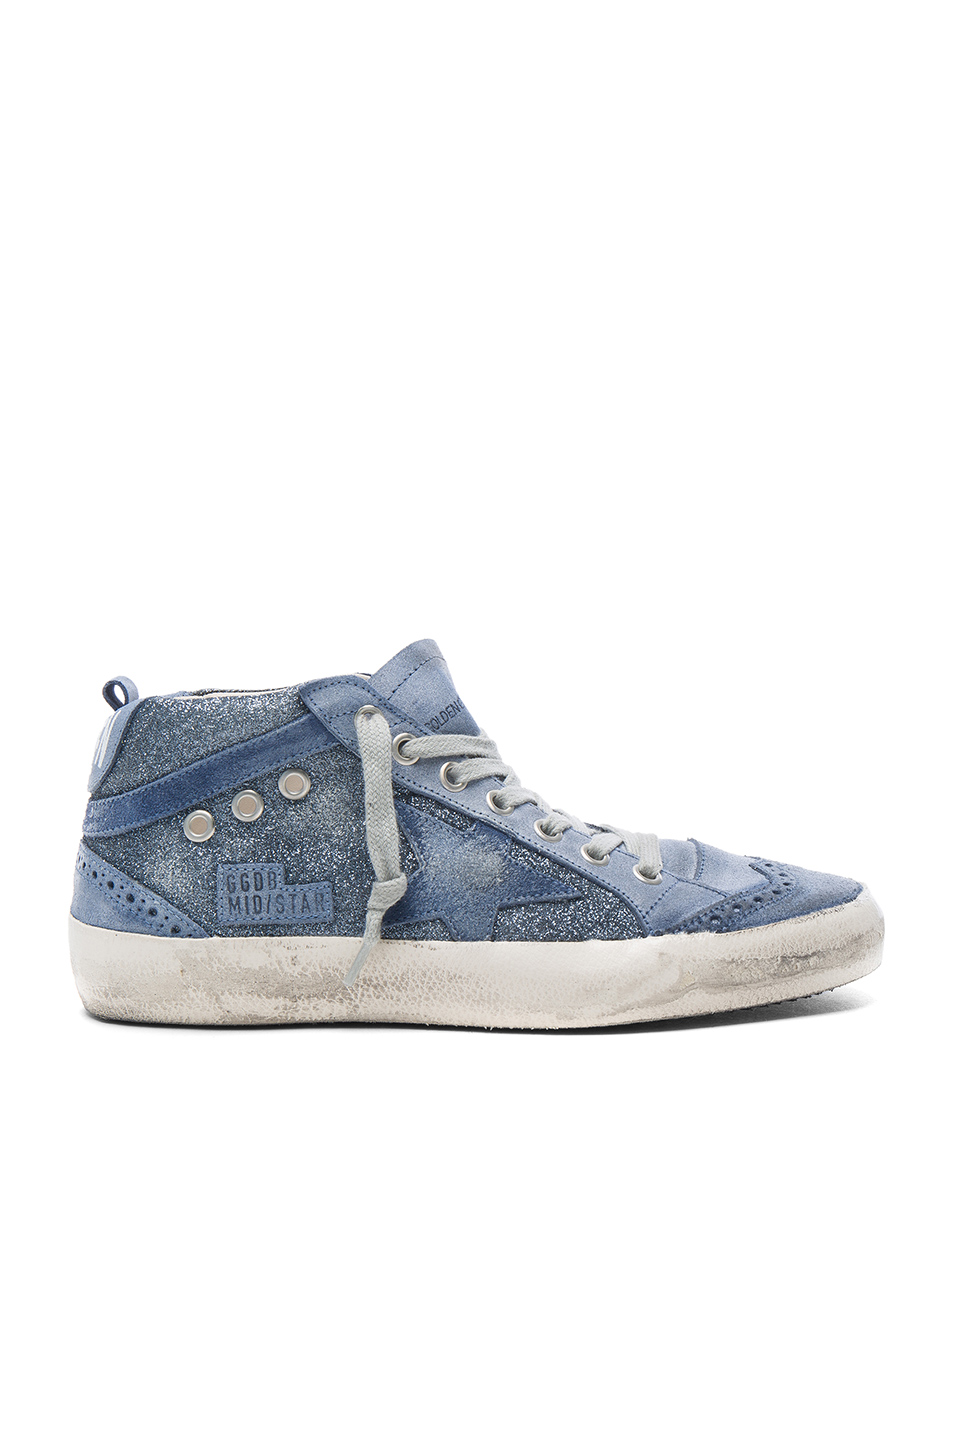 Golden Goose Leather Mid Star Sneakers in Blue